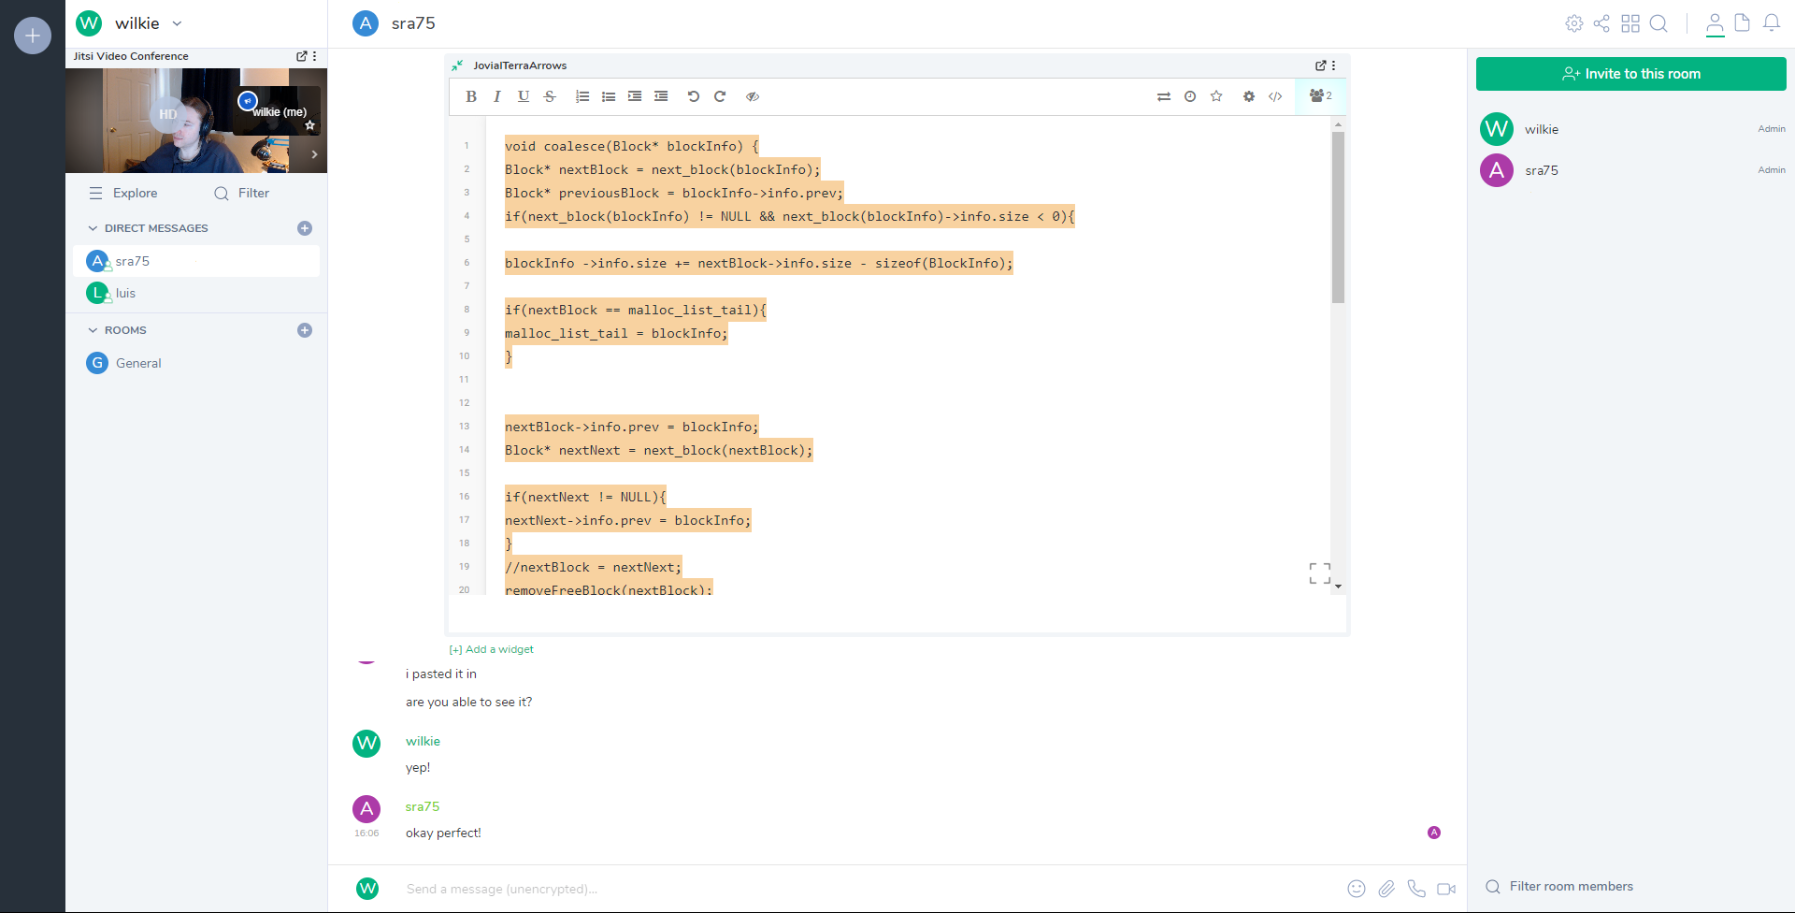 screenshot of riot, which is a slack-like thing, with a webcam of me in the corner and an etherpad showing some code in a direct message section with a student